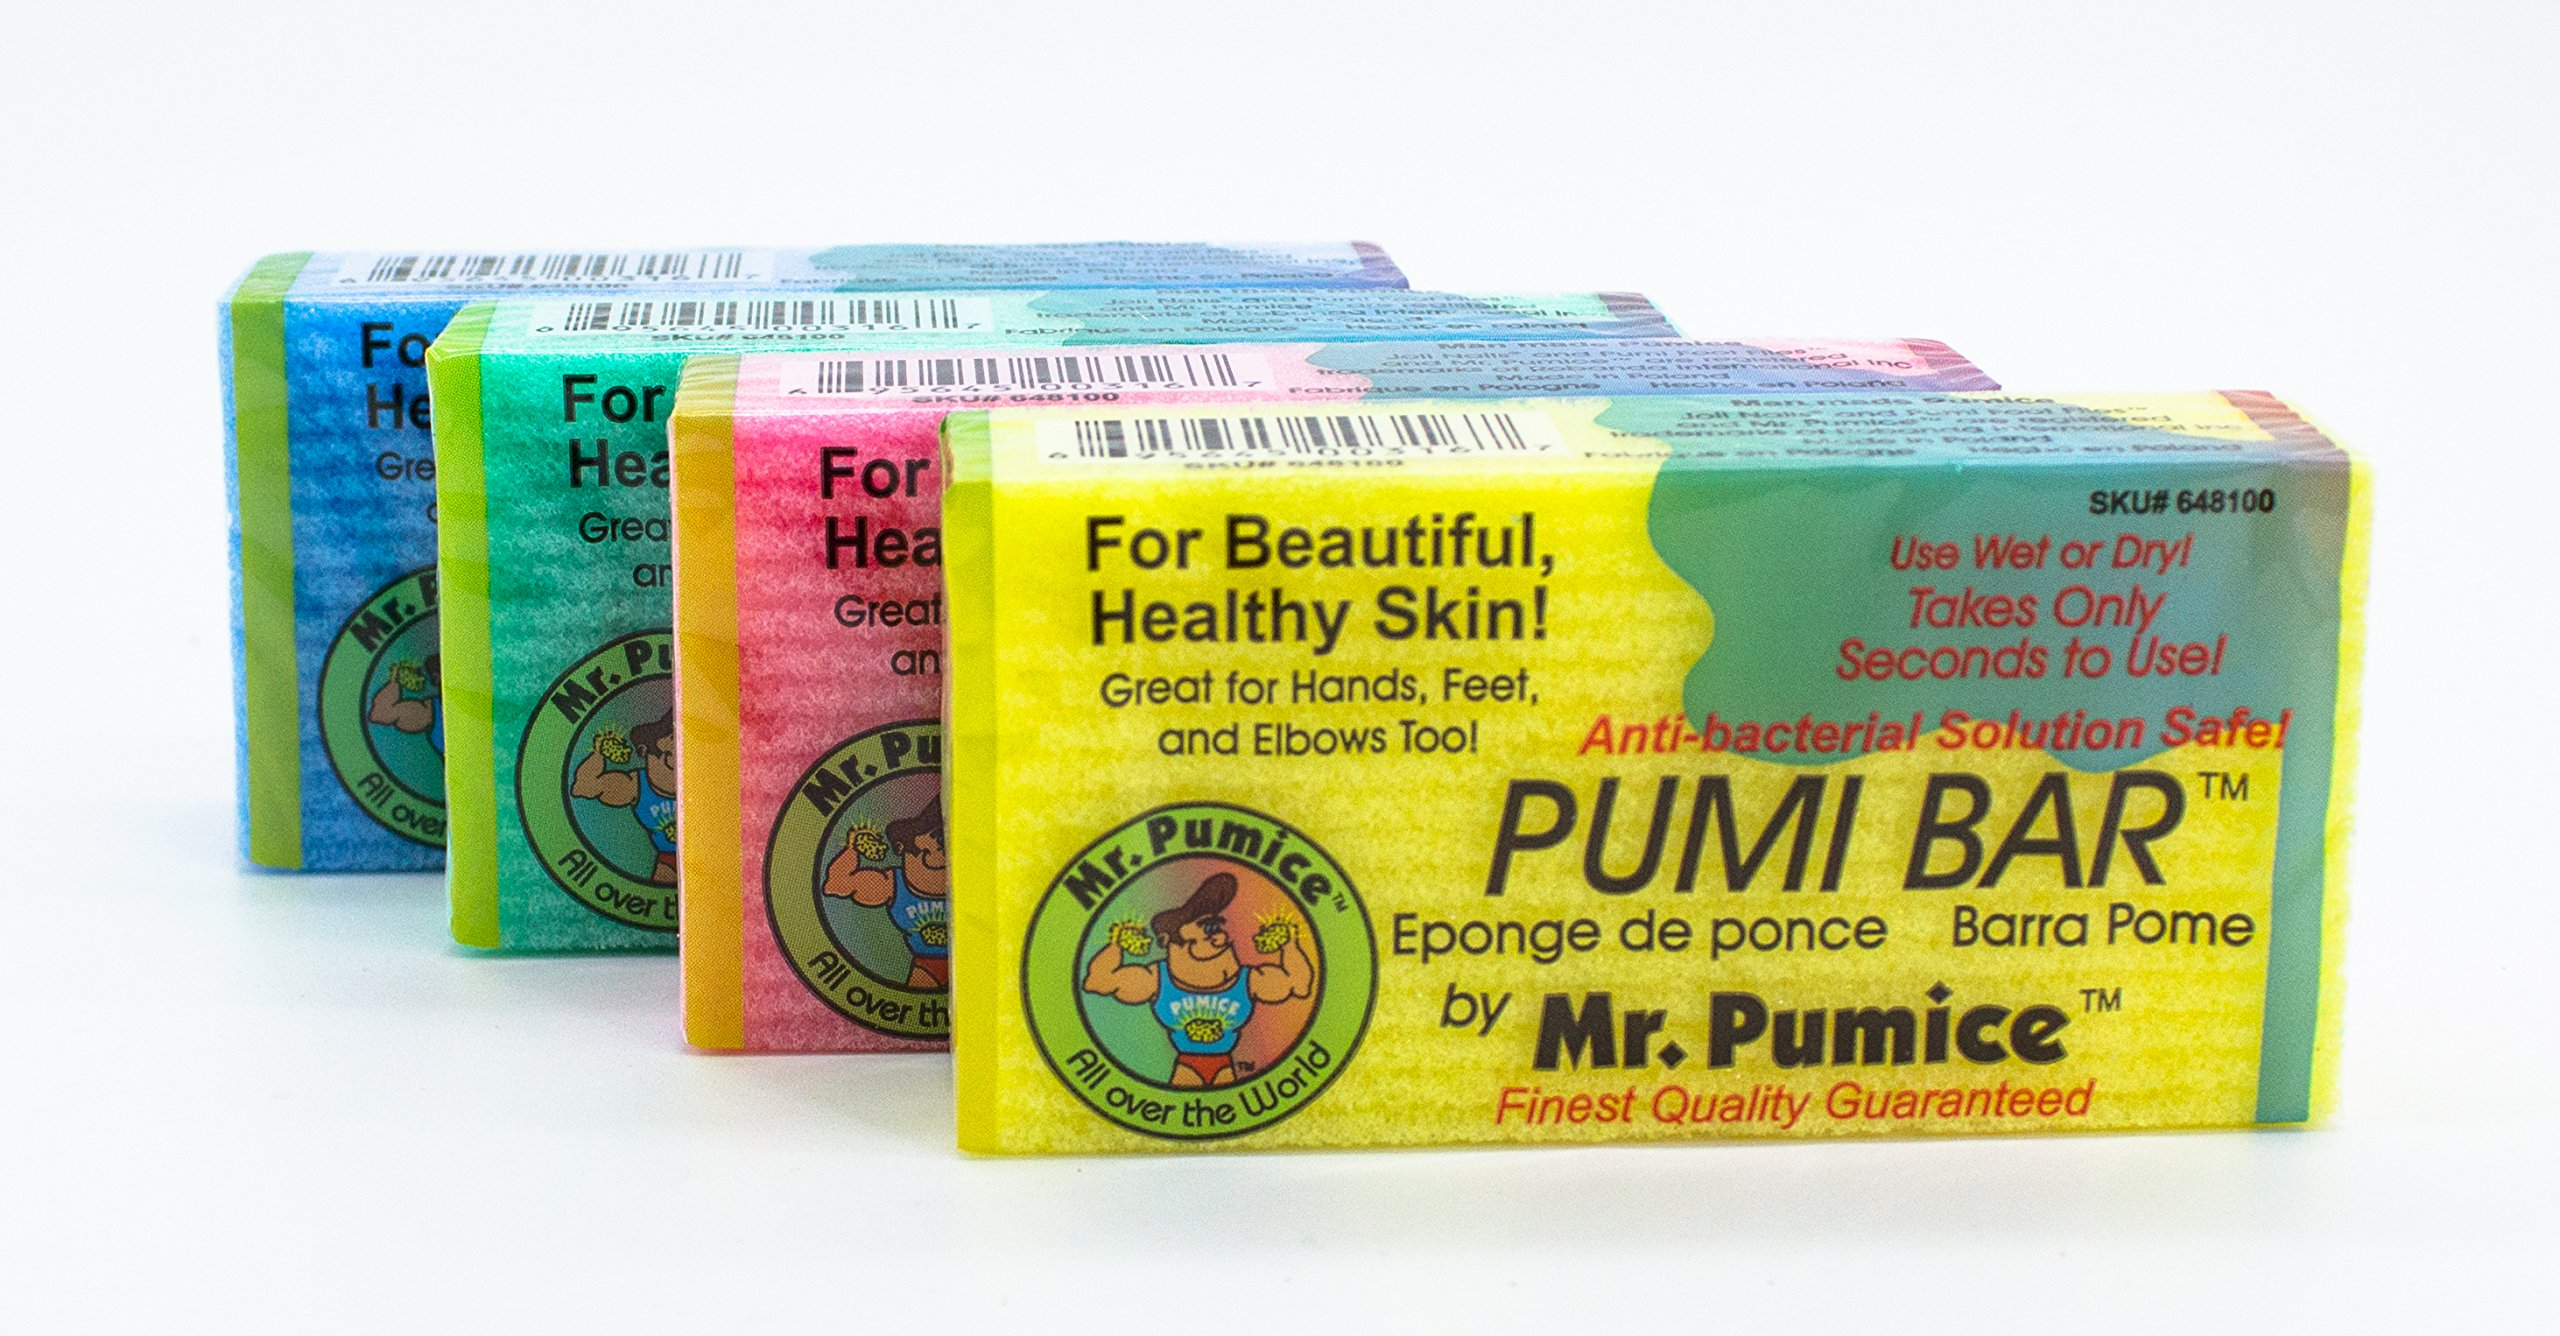 Mr. Pumice Pumi Bar (4 Pack, Assorted Colors): Medium Grit Callus Remover, Pedicure Stone and Ped File Scrubber For Smooth Feet and Heels